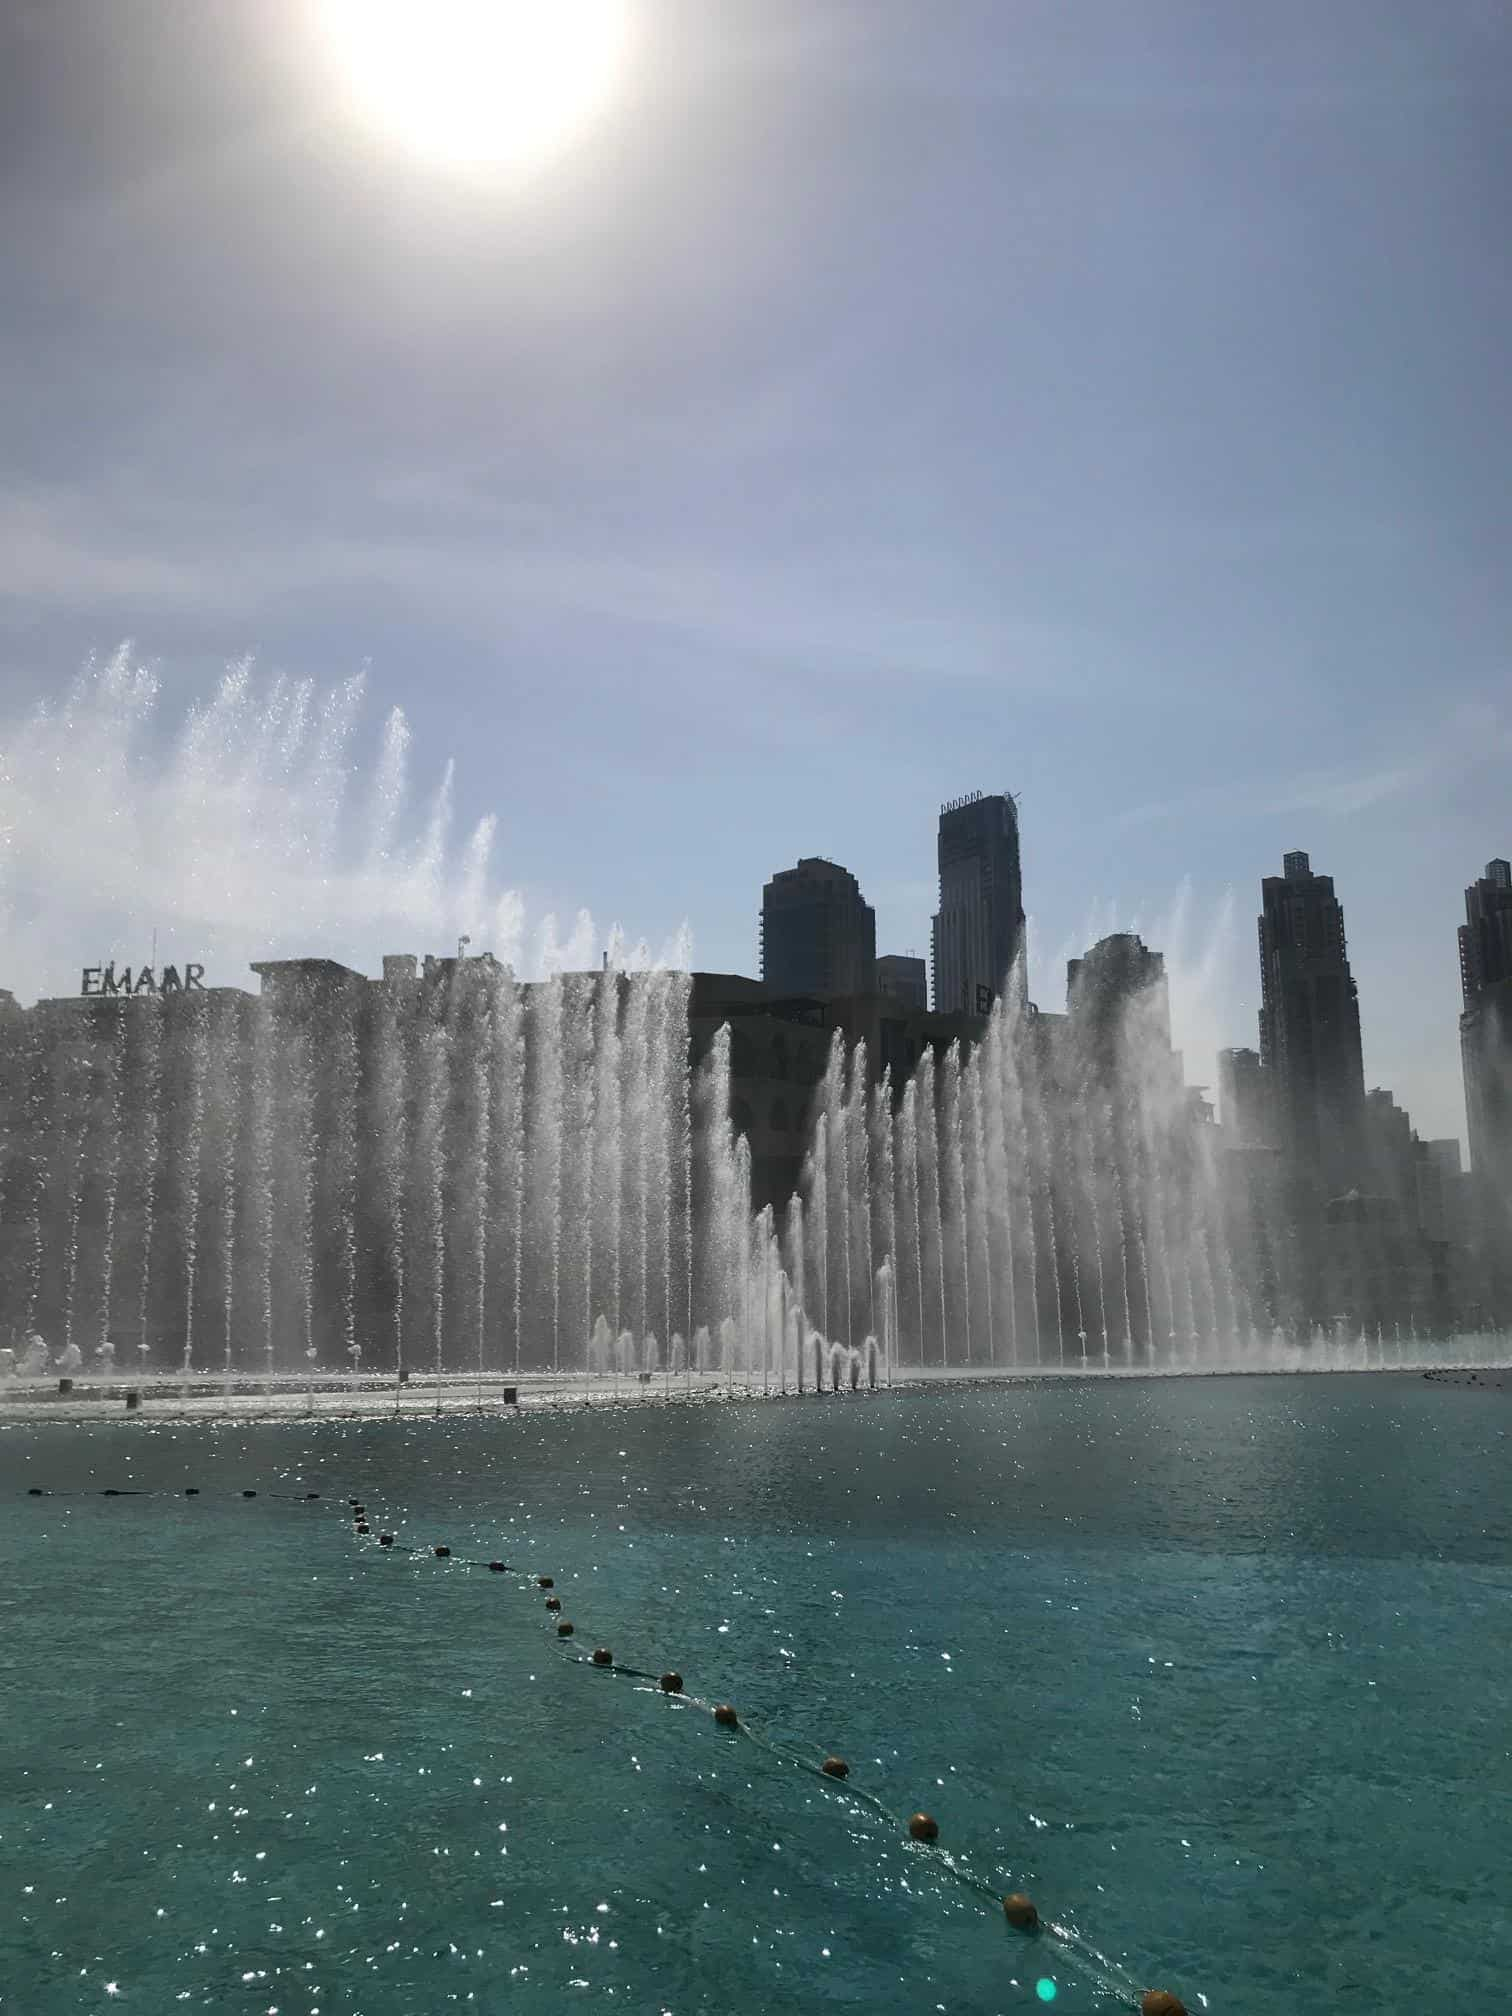 Dubai Fountains - what to see on a dubai babymoon and tips for travelling to Dubai while pregnant